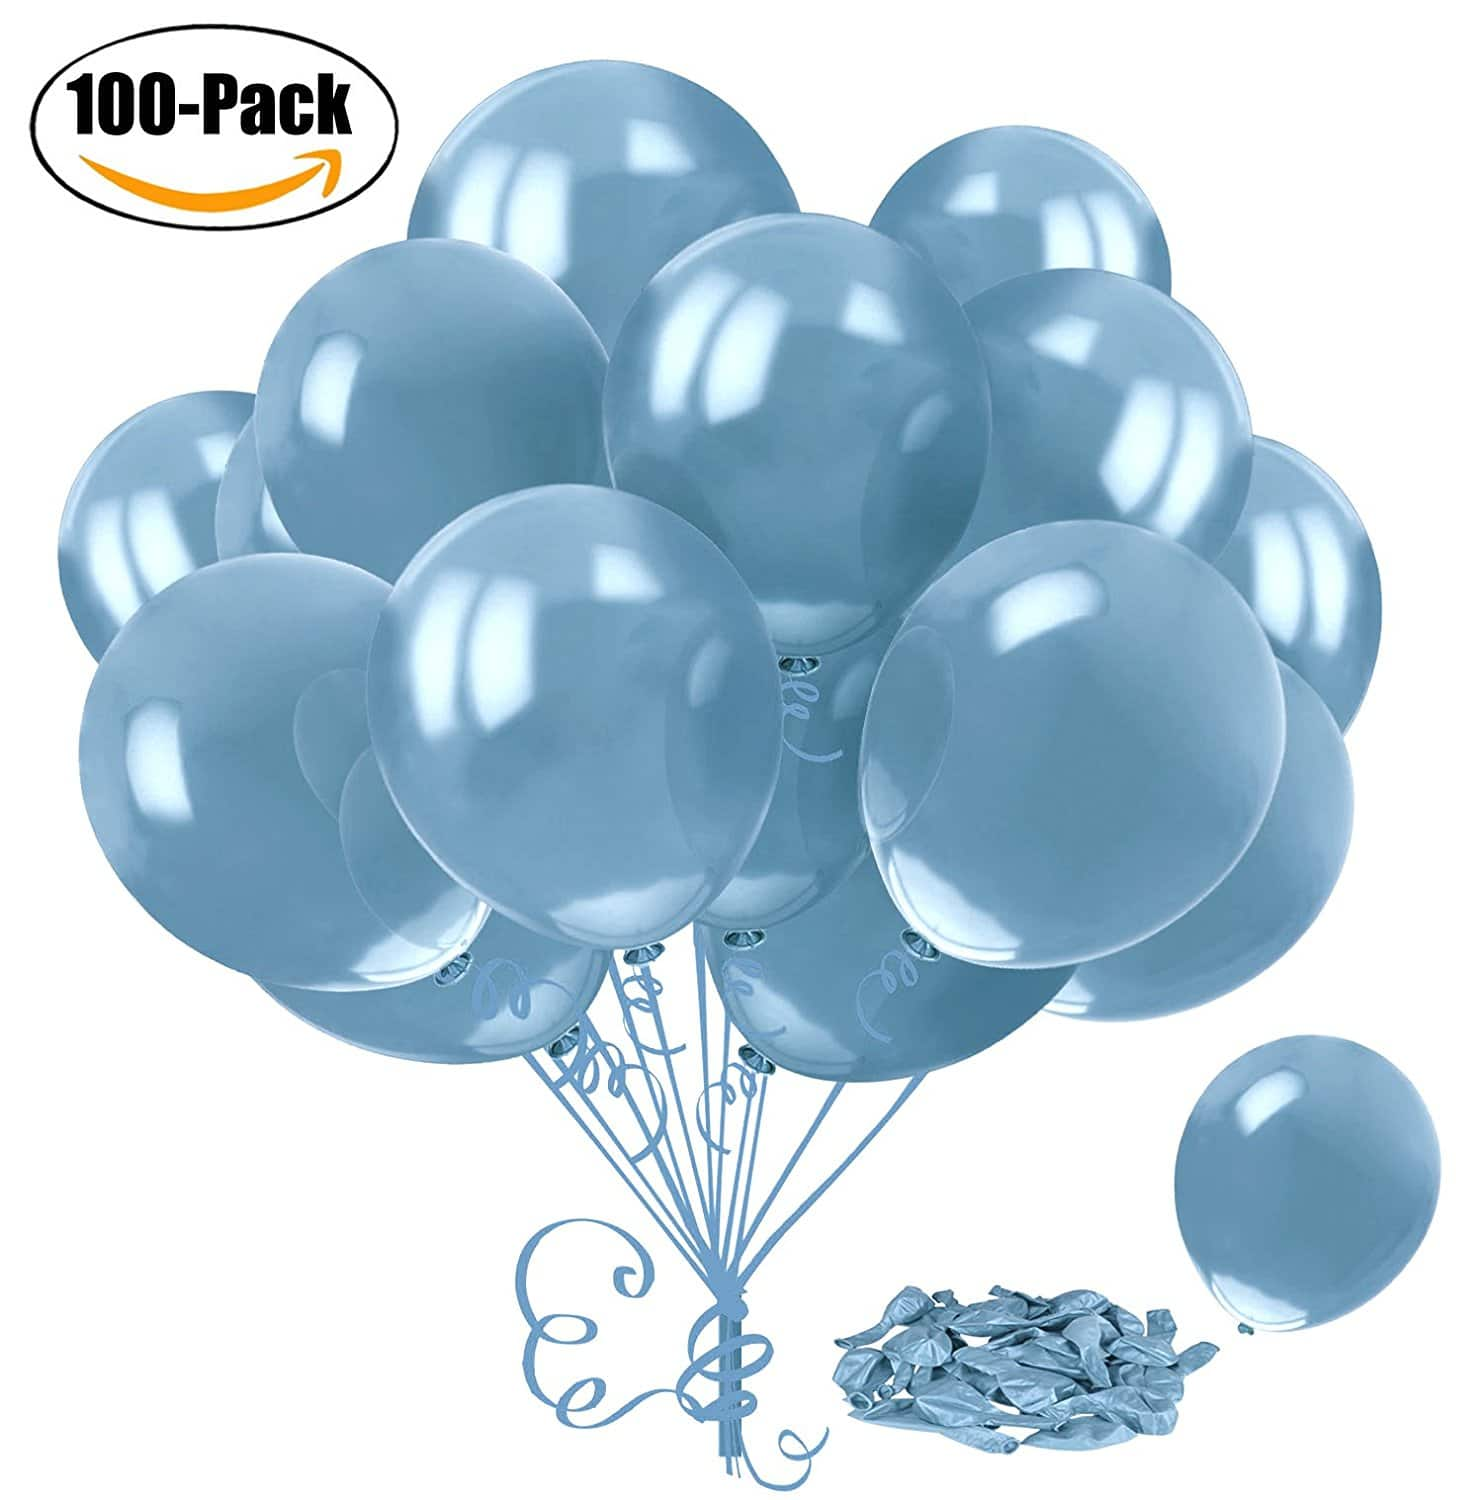 100 12-inch Latex Balloons Sky Blue $2.99 a/c + free Prime shipping